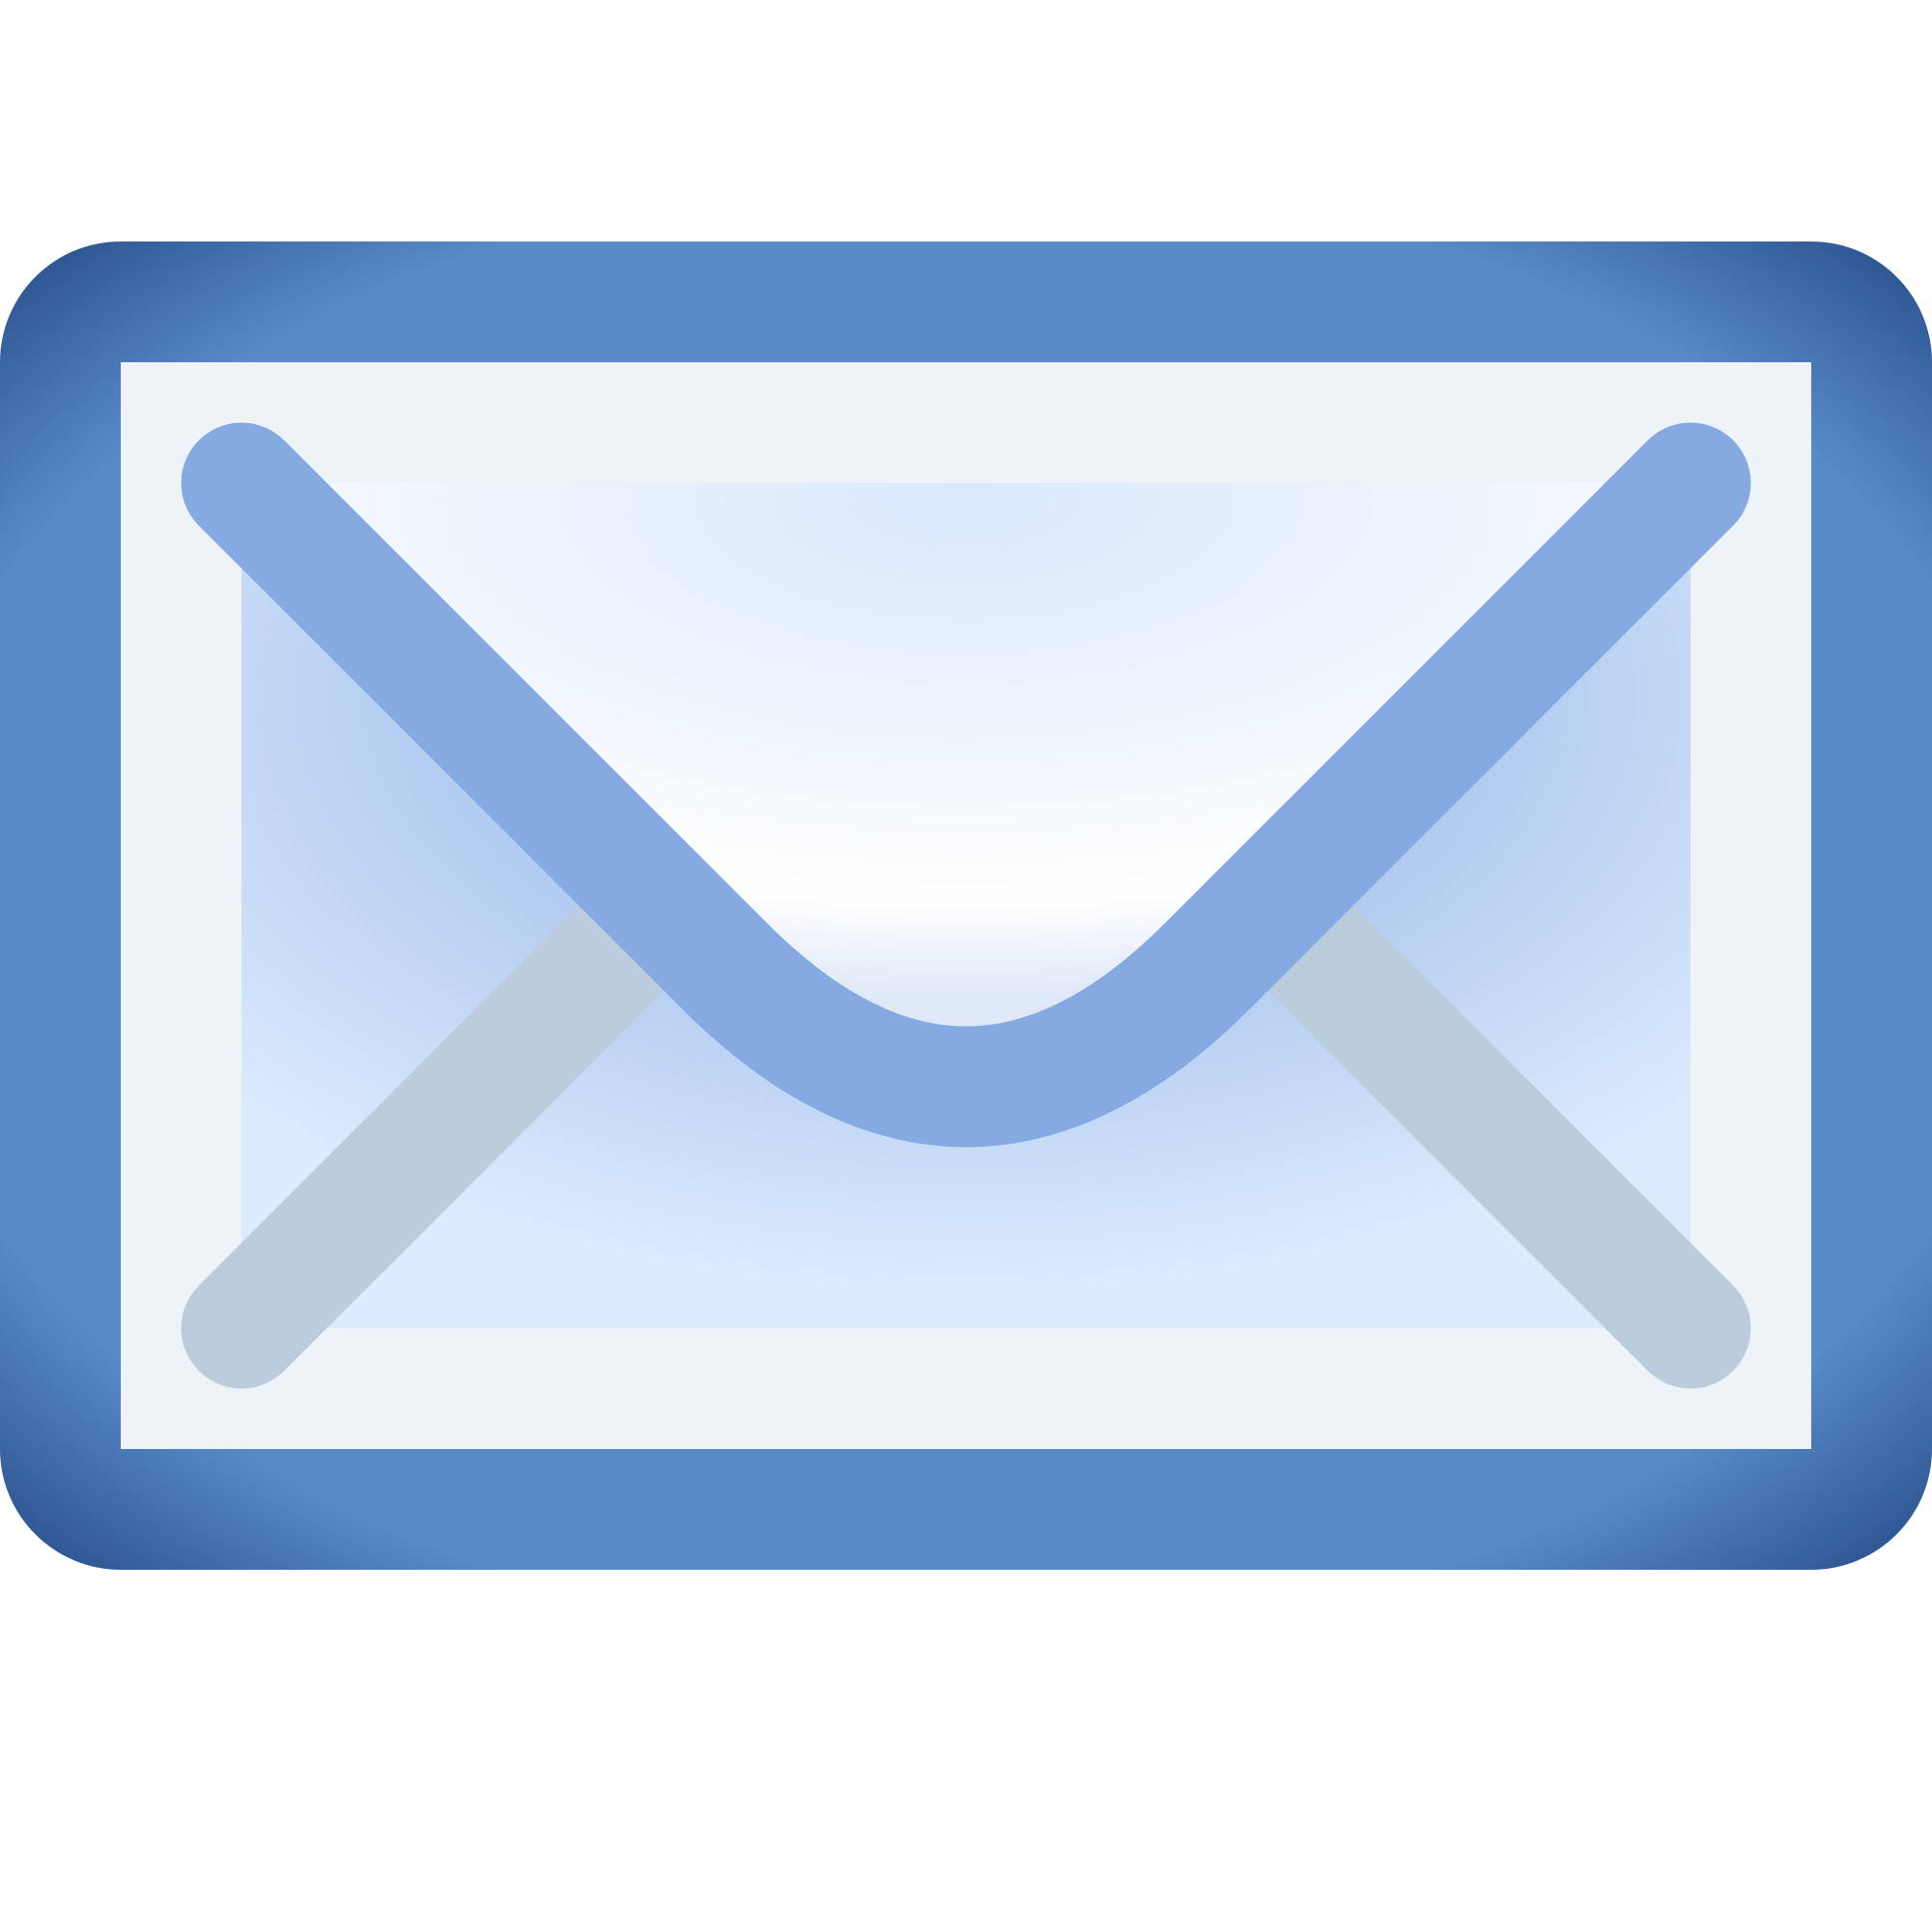 An image of a blue envelope